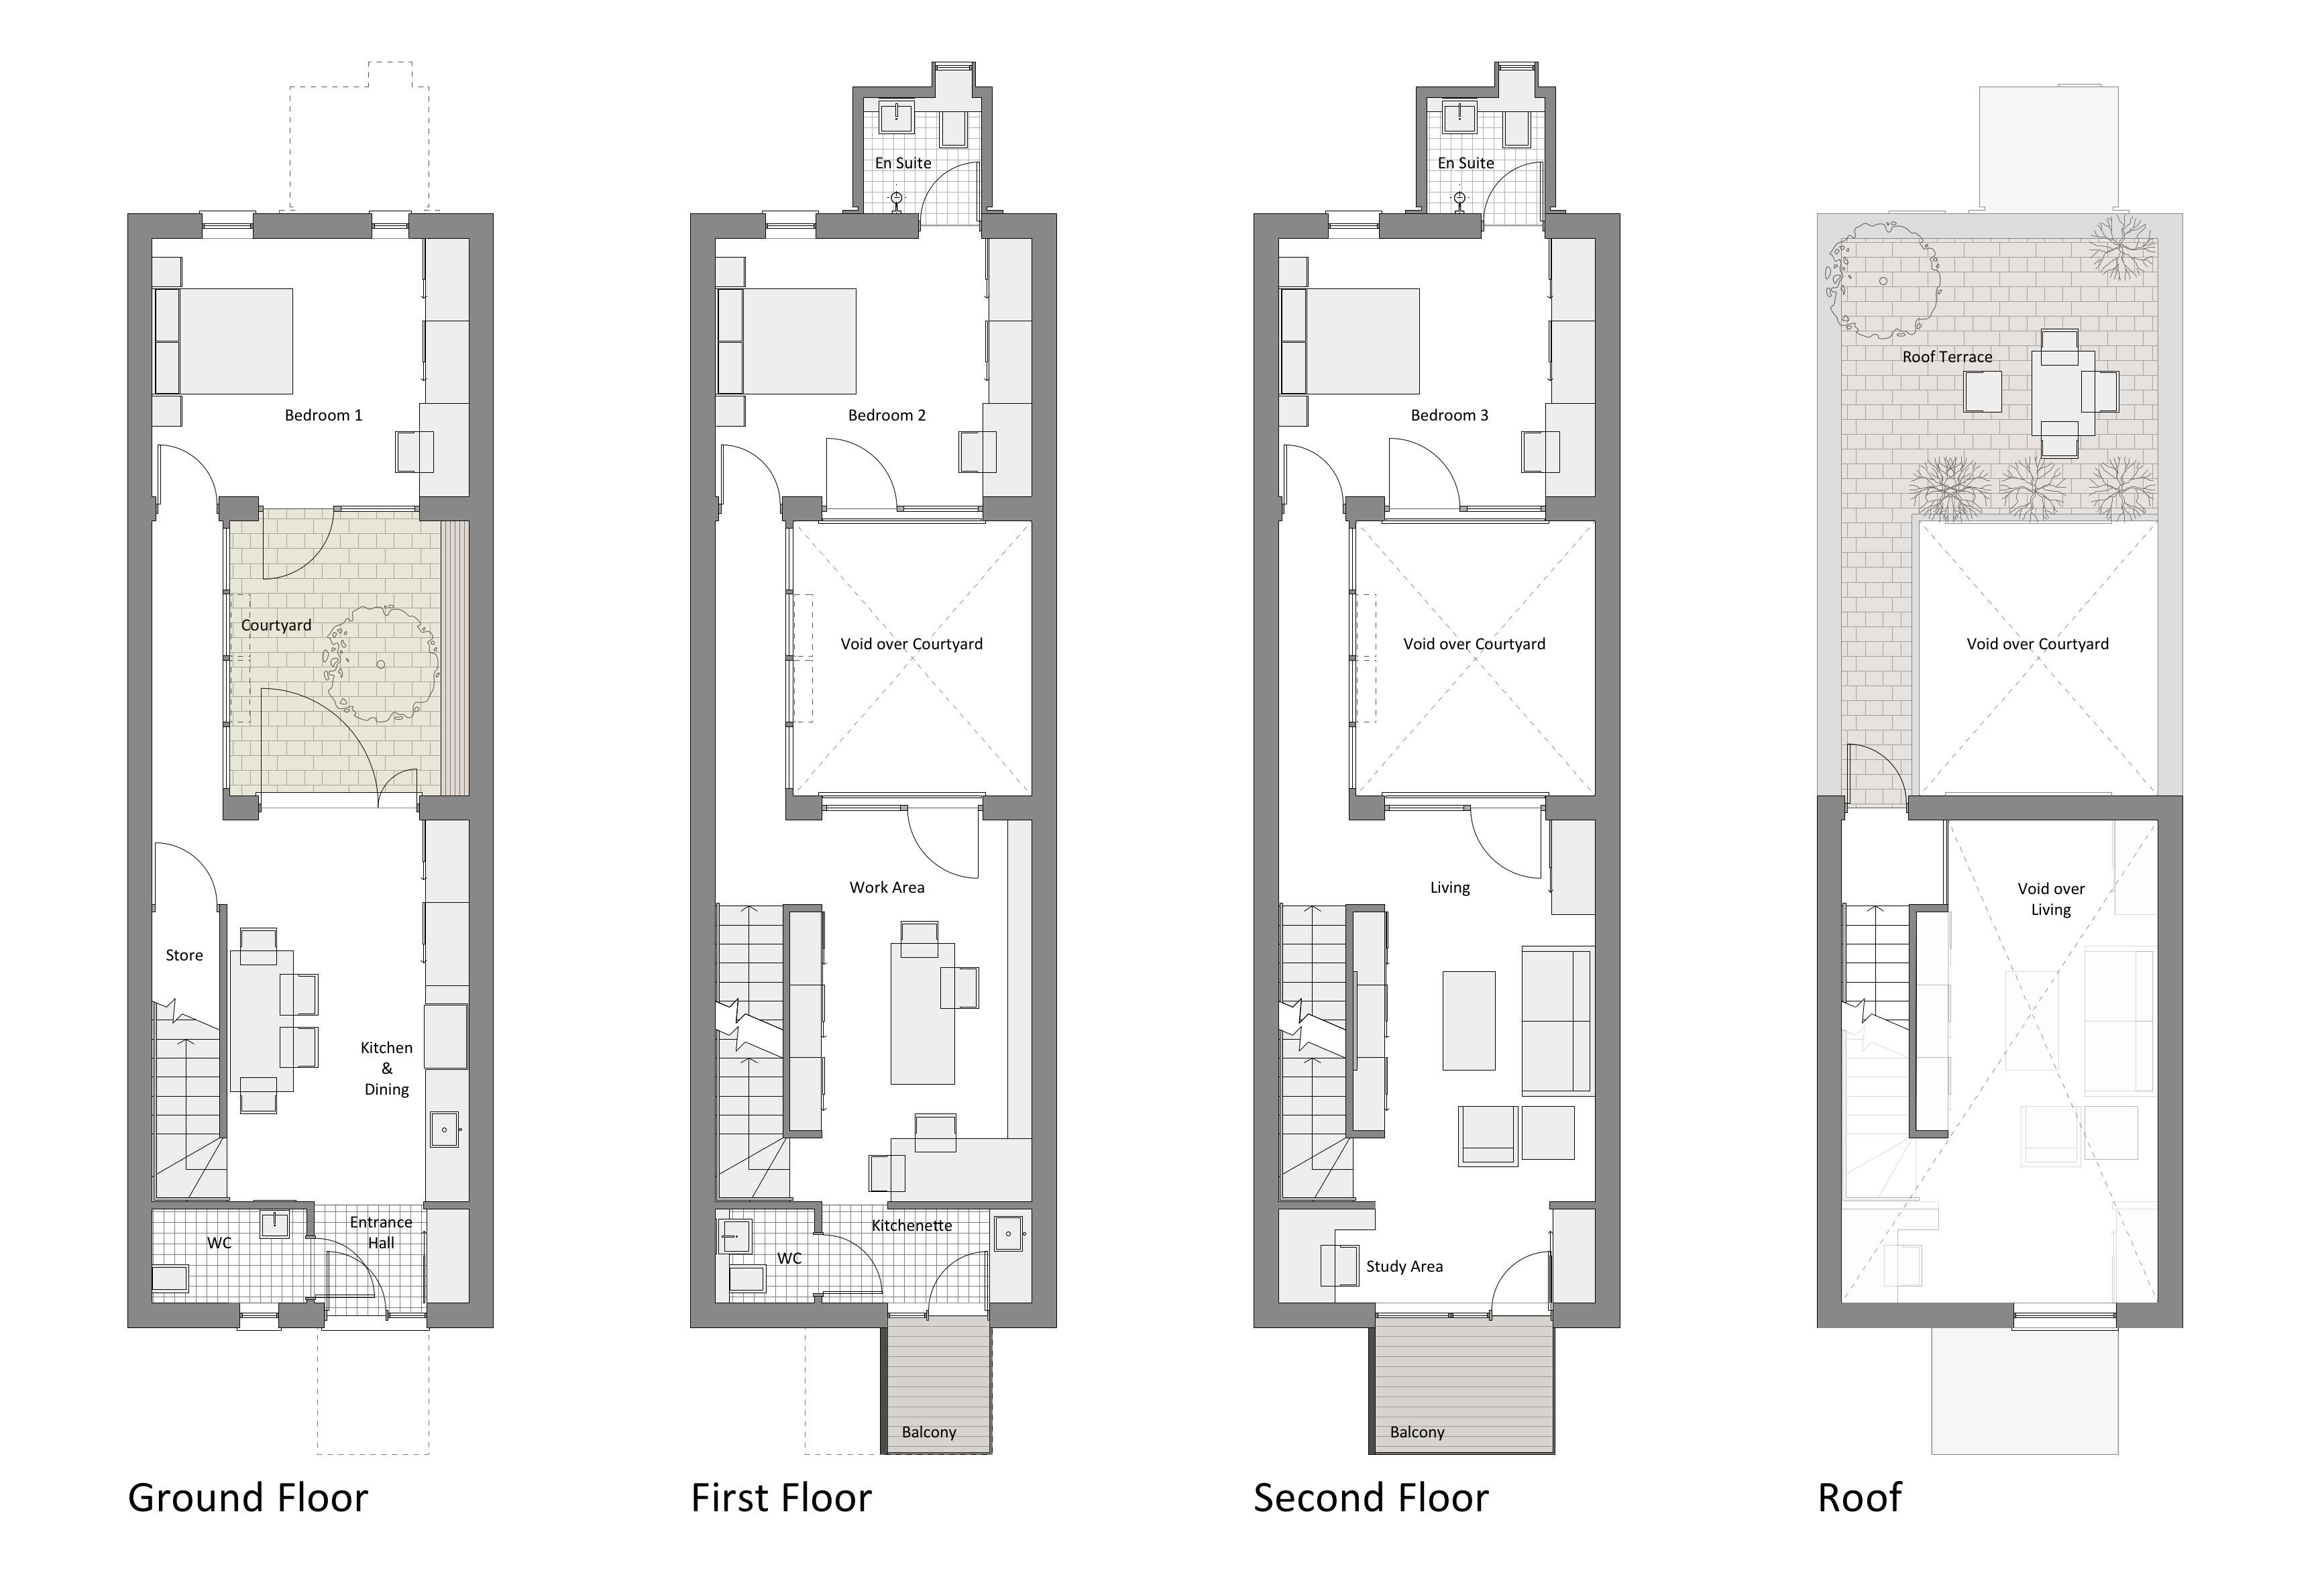 Narrow Row House Floor Plans Of Narrow Row House Floor Plans Google Search Row Houses